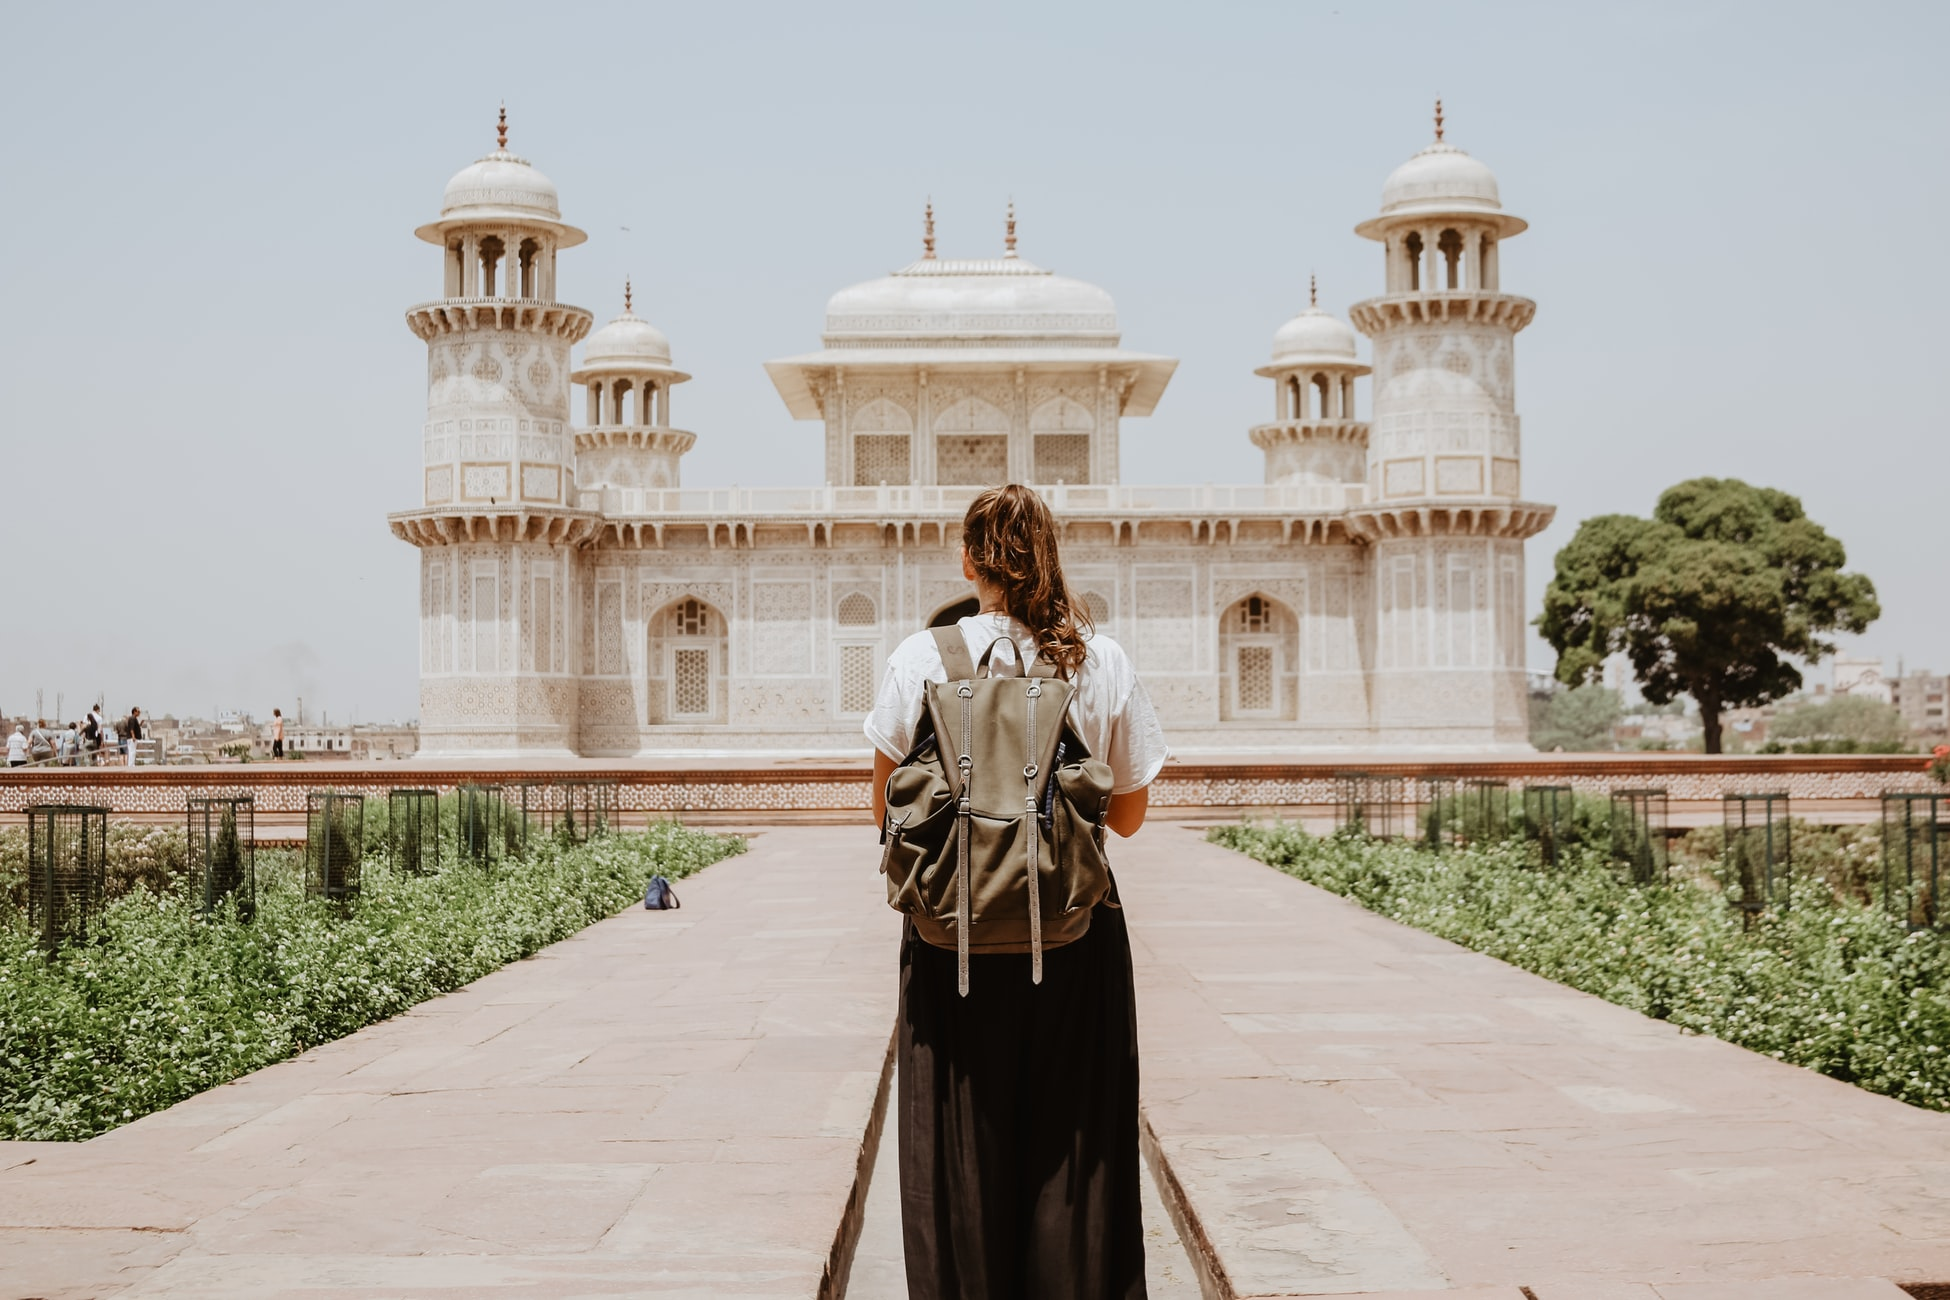 A Girl Standing in front of a monument - A Little Game of Budget Travel